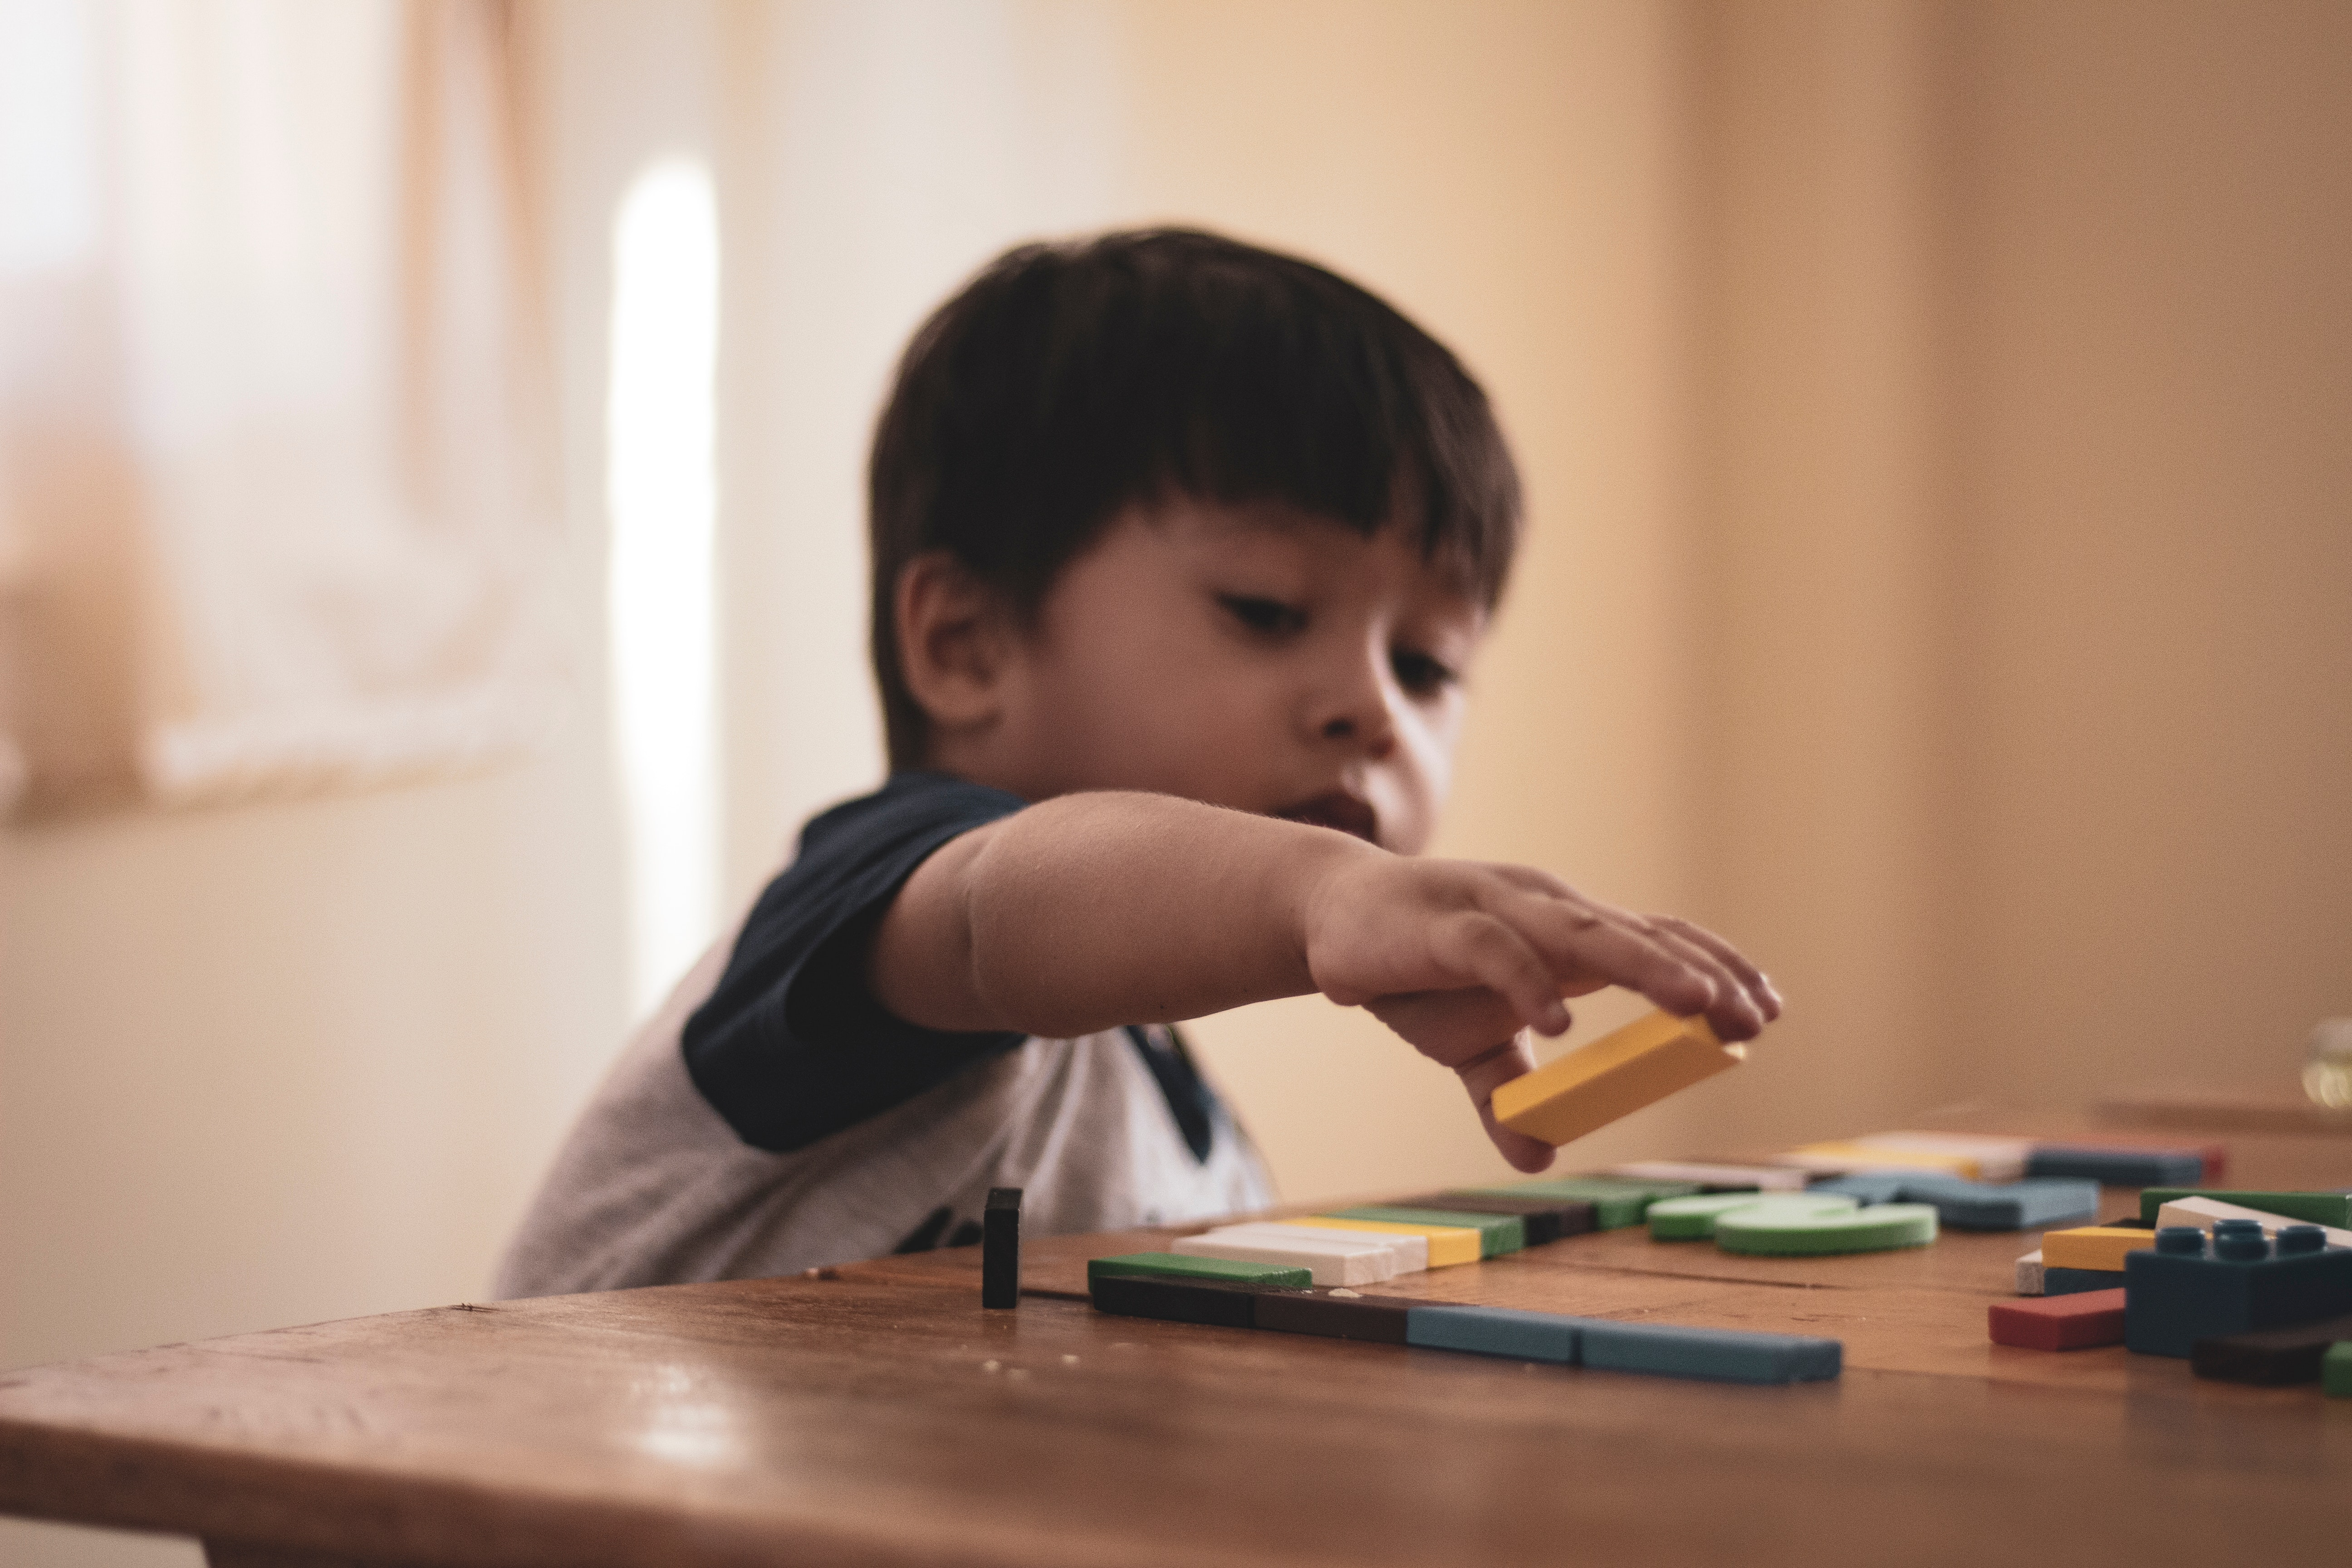 children learn critical thinking skills through play